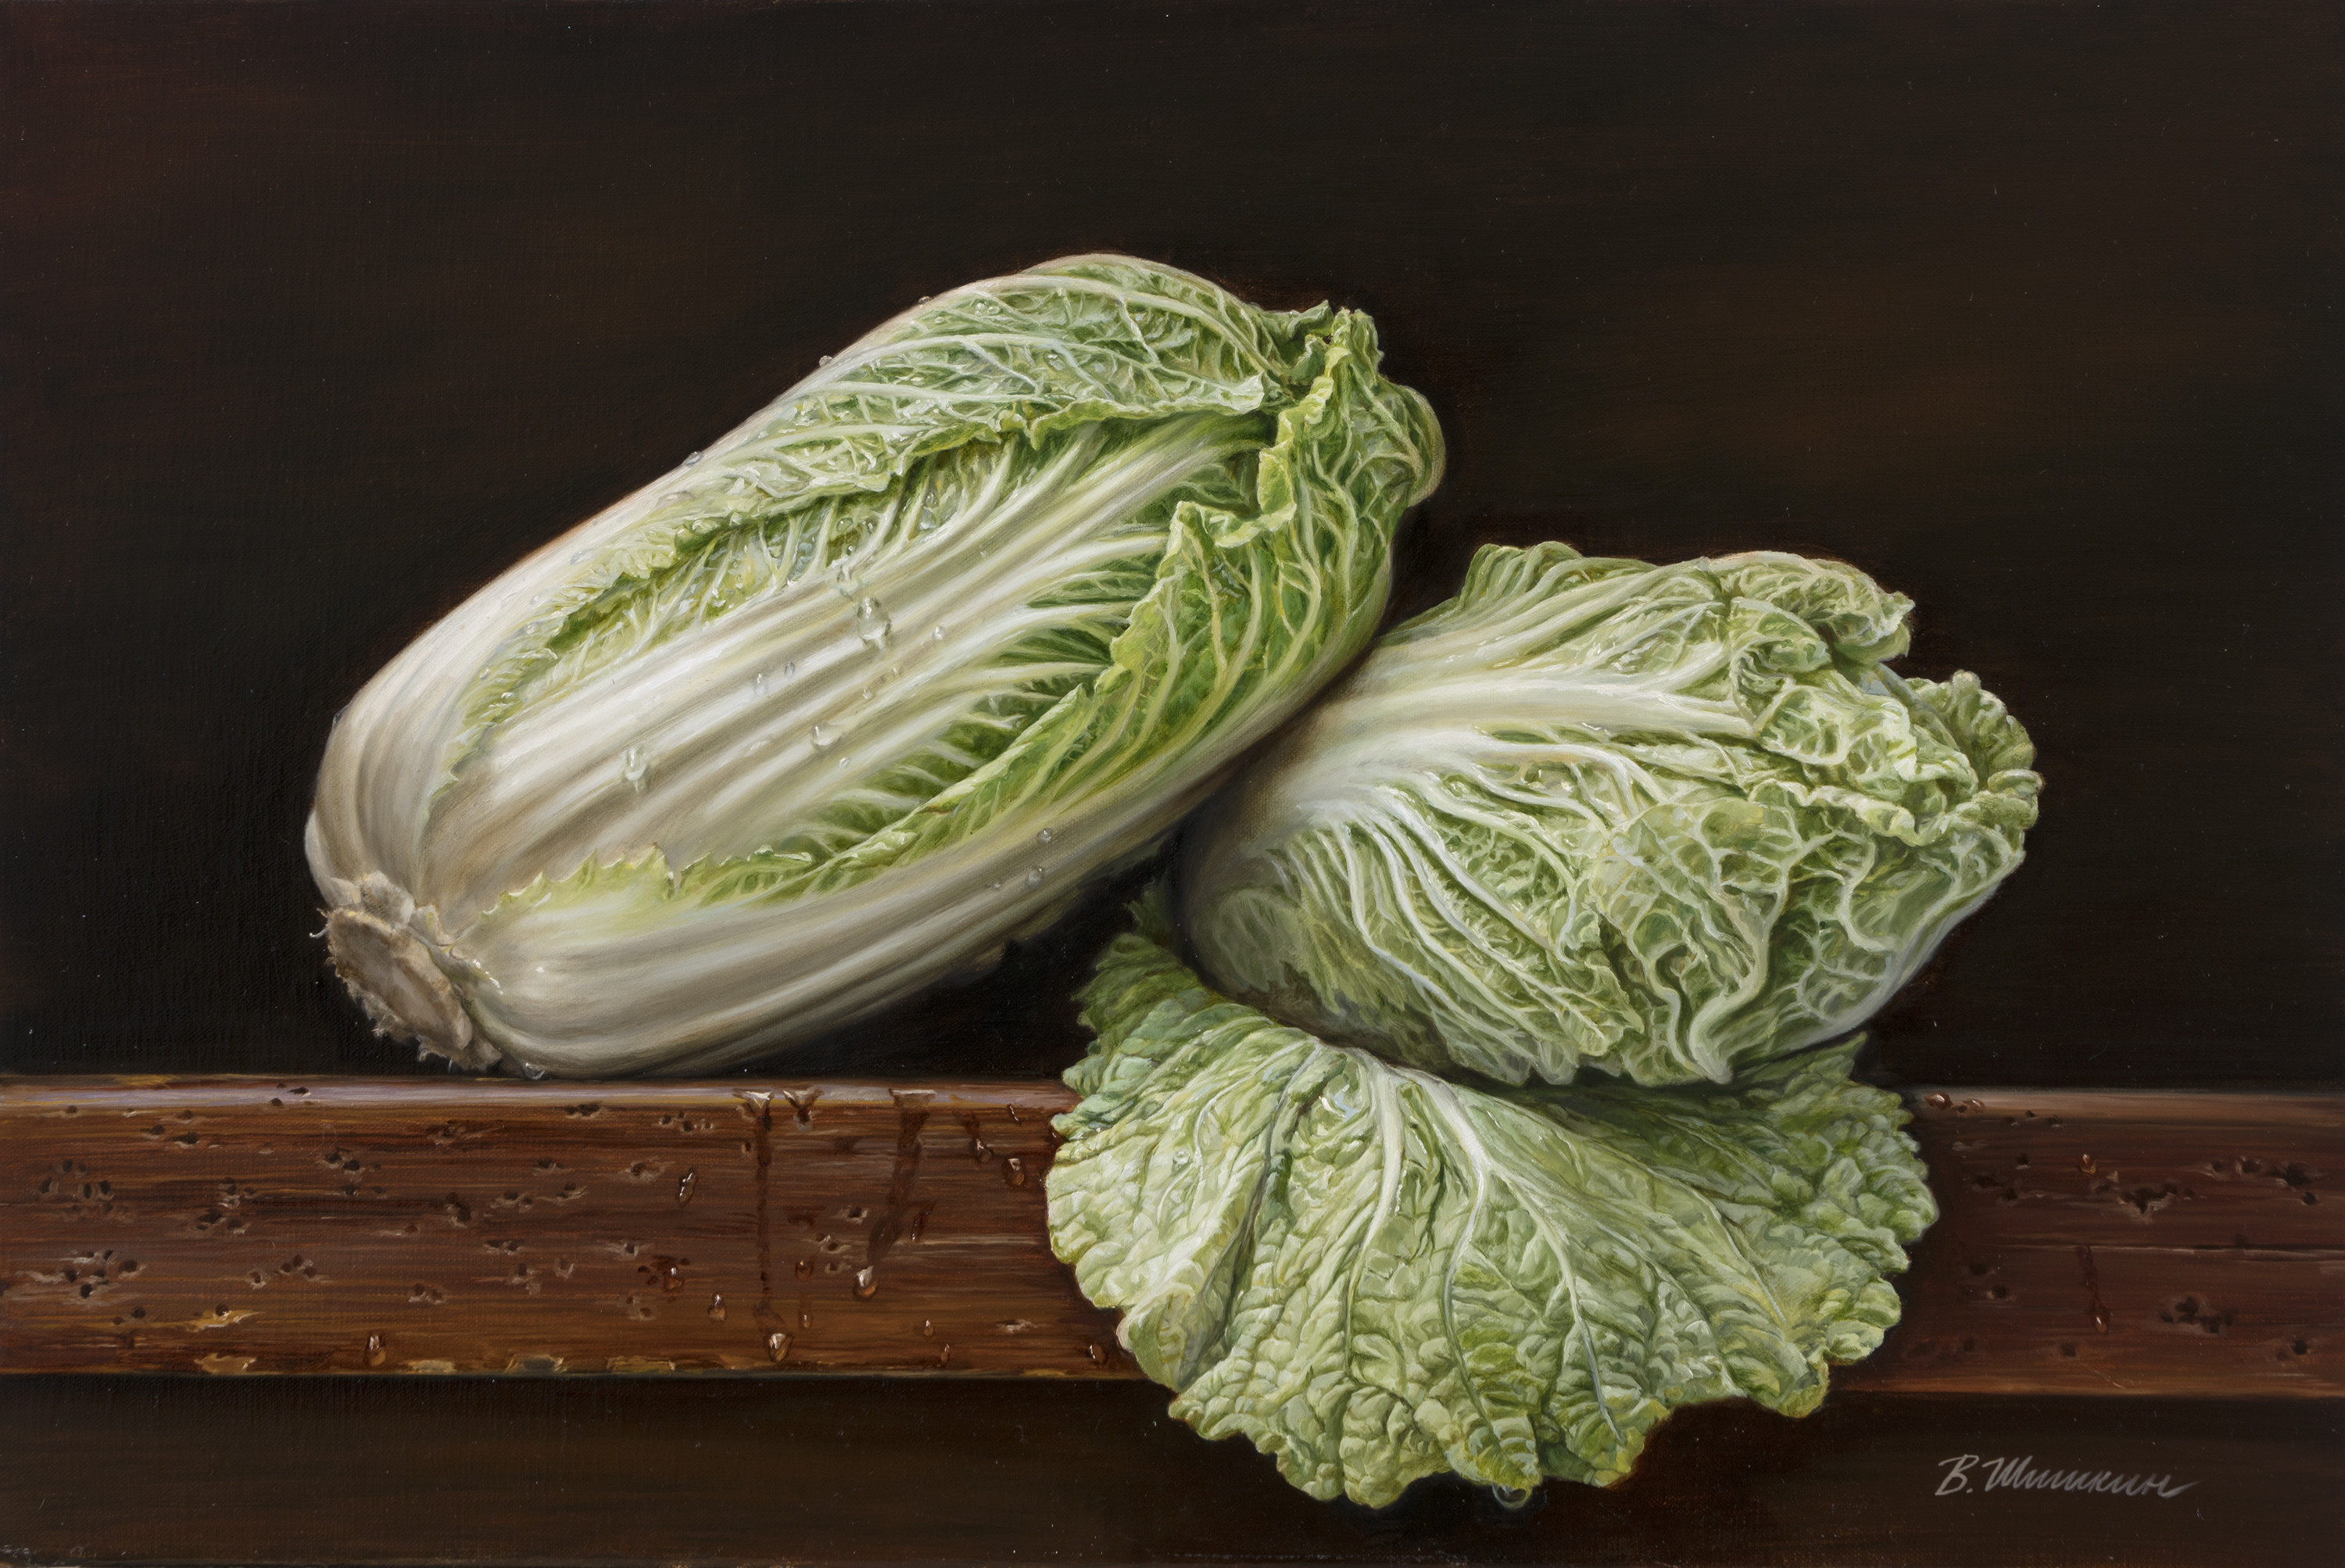 Chinese cabbage2